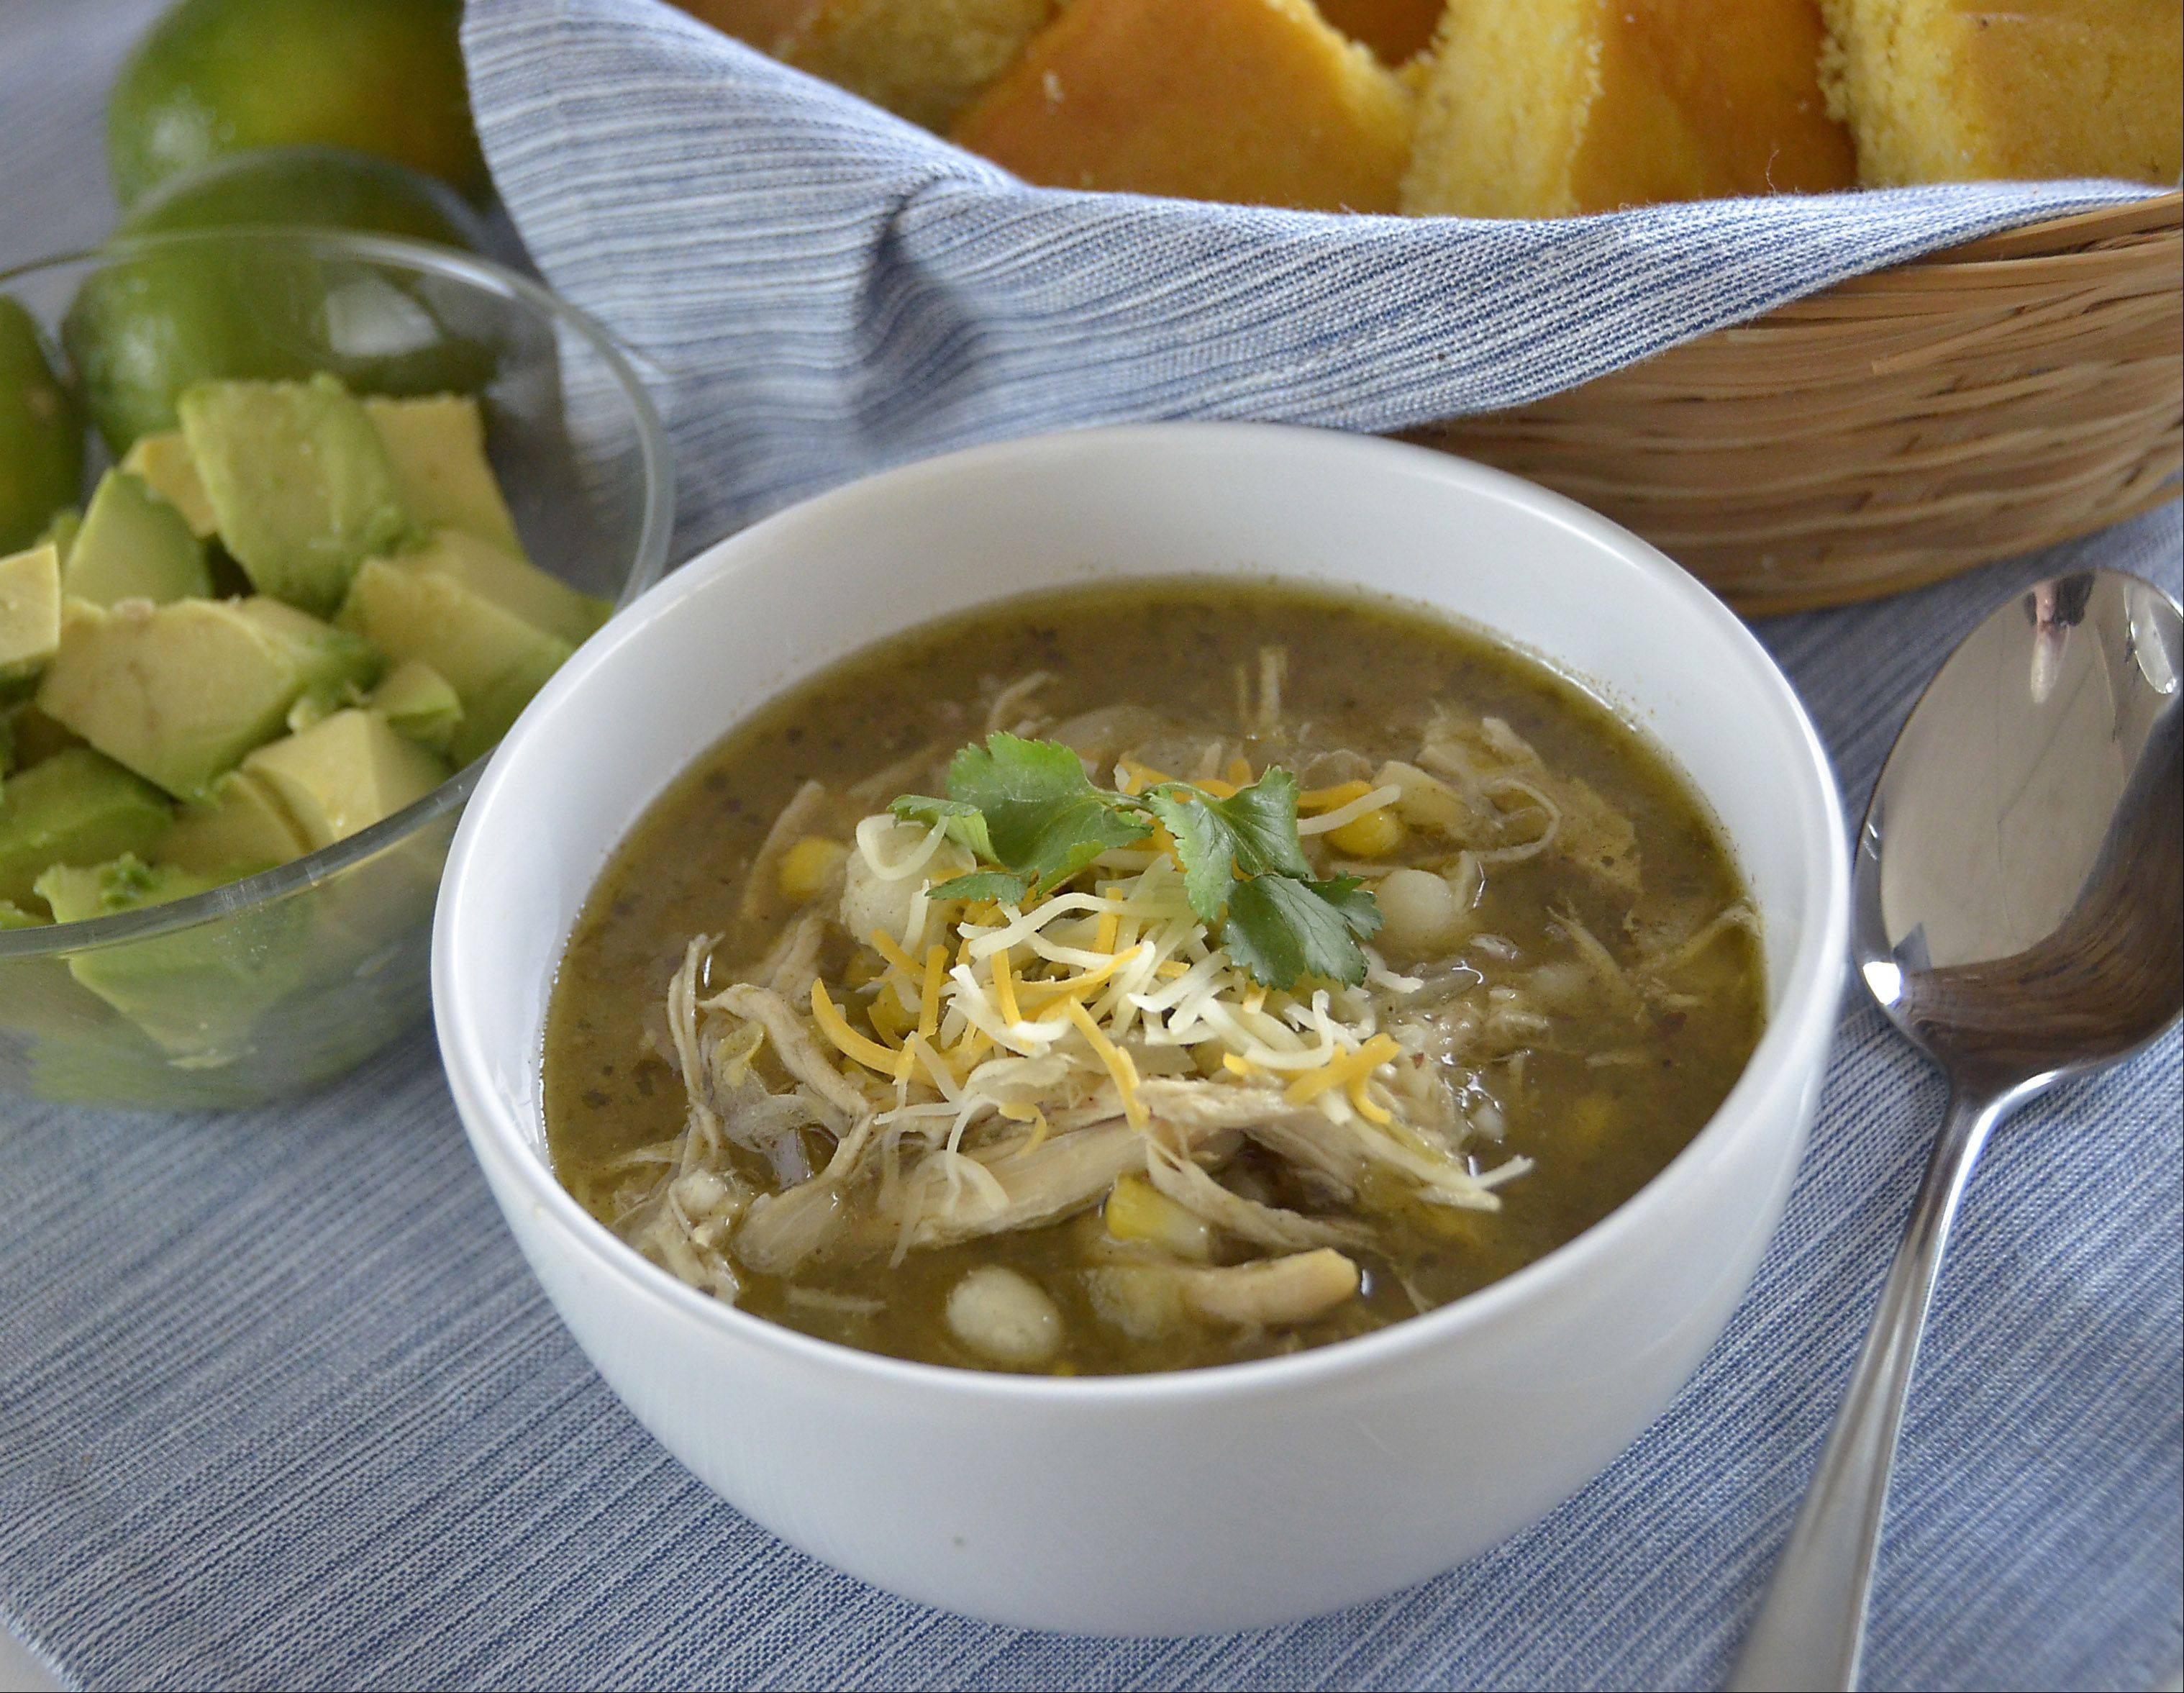 Convenience foods like supermarket roasted chicken and frozen corn help this chicken chili come together relatively quick and still boast bowls full of flavor.